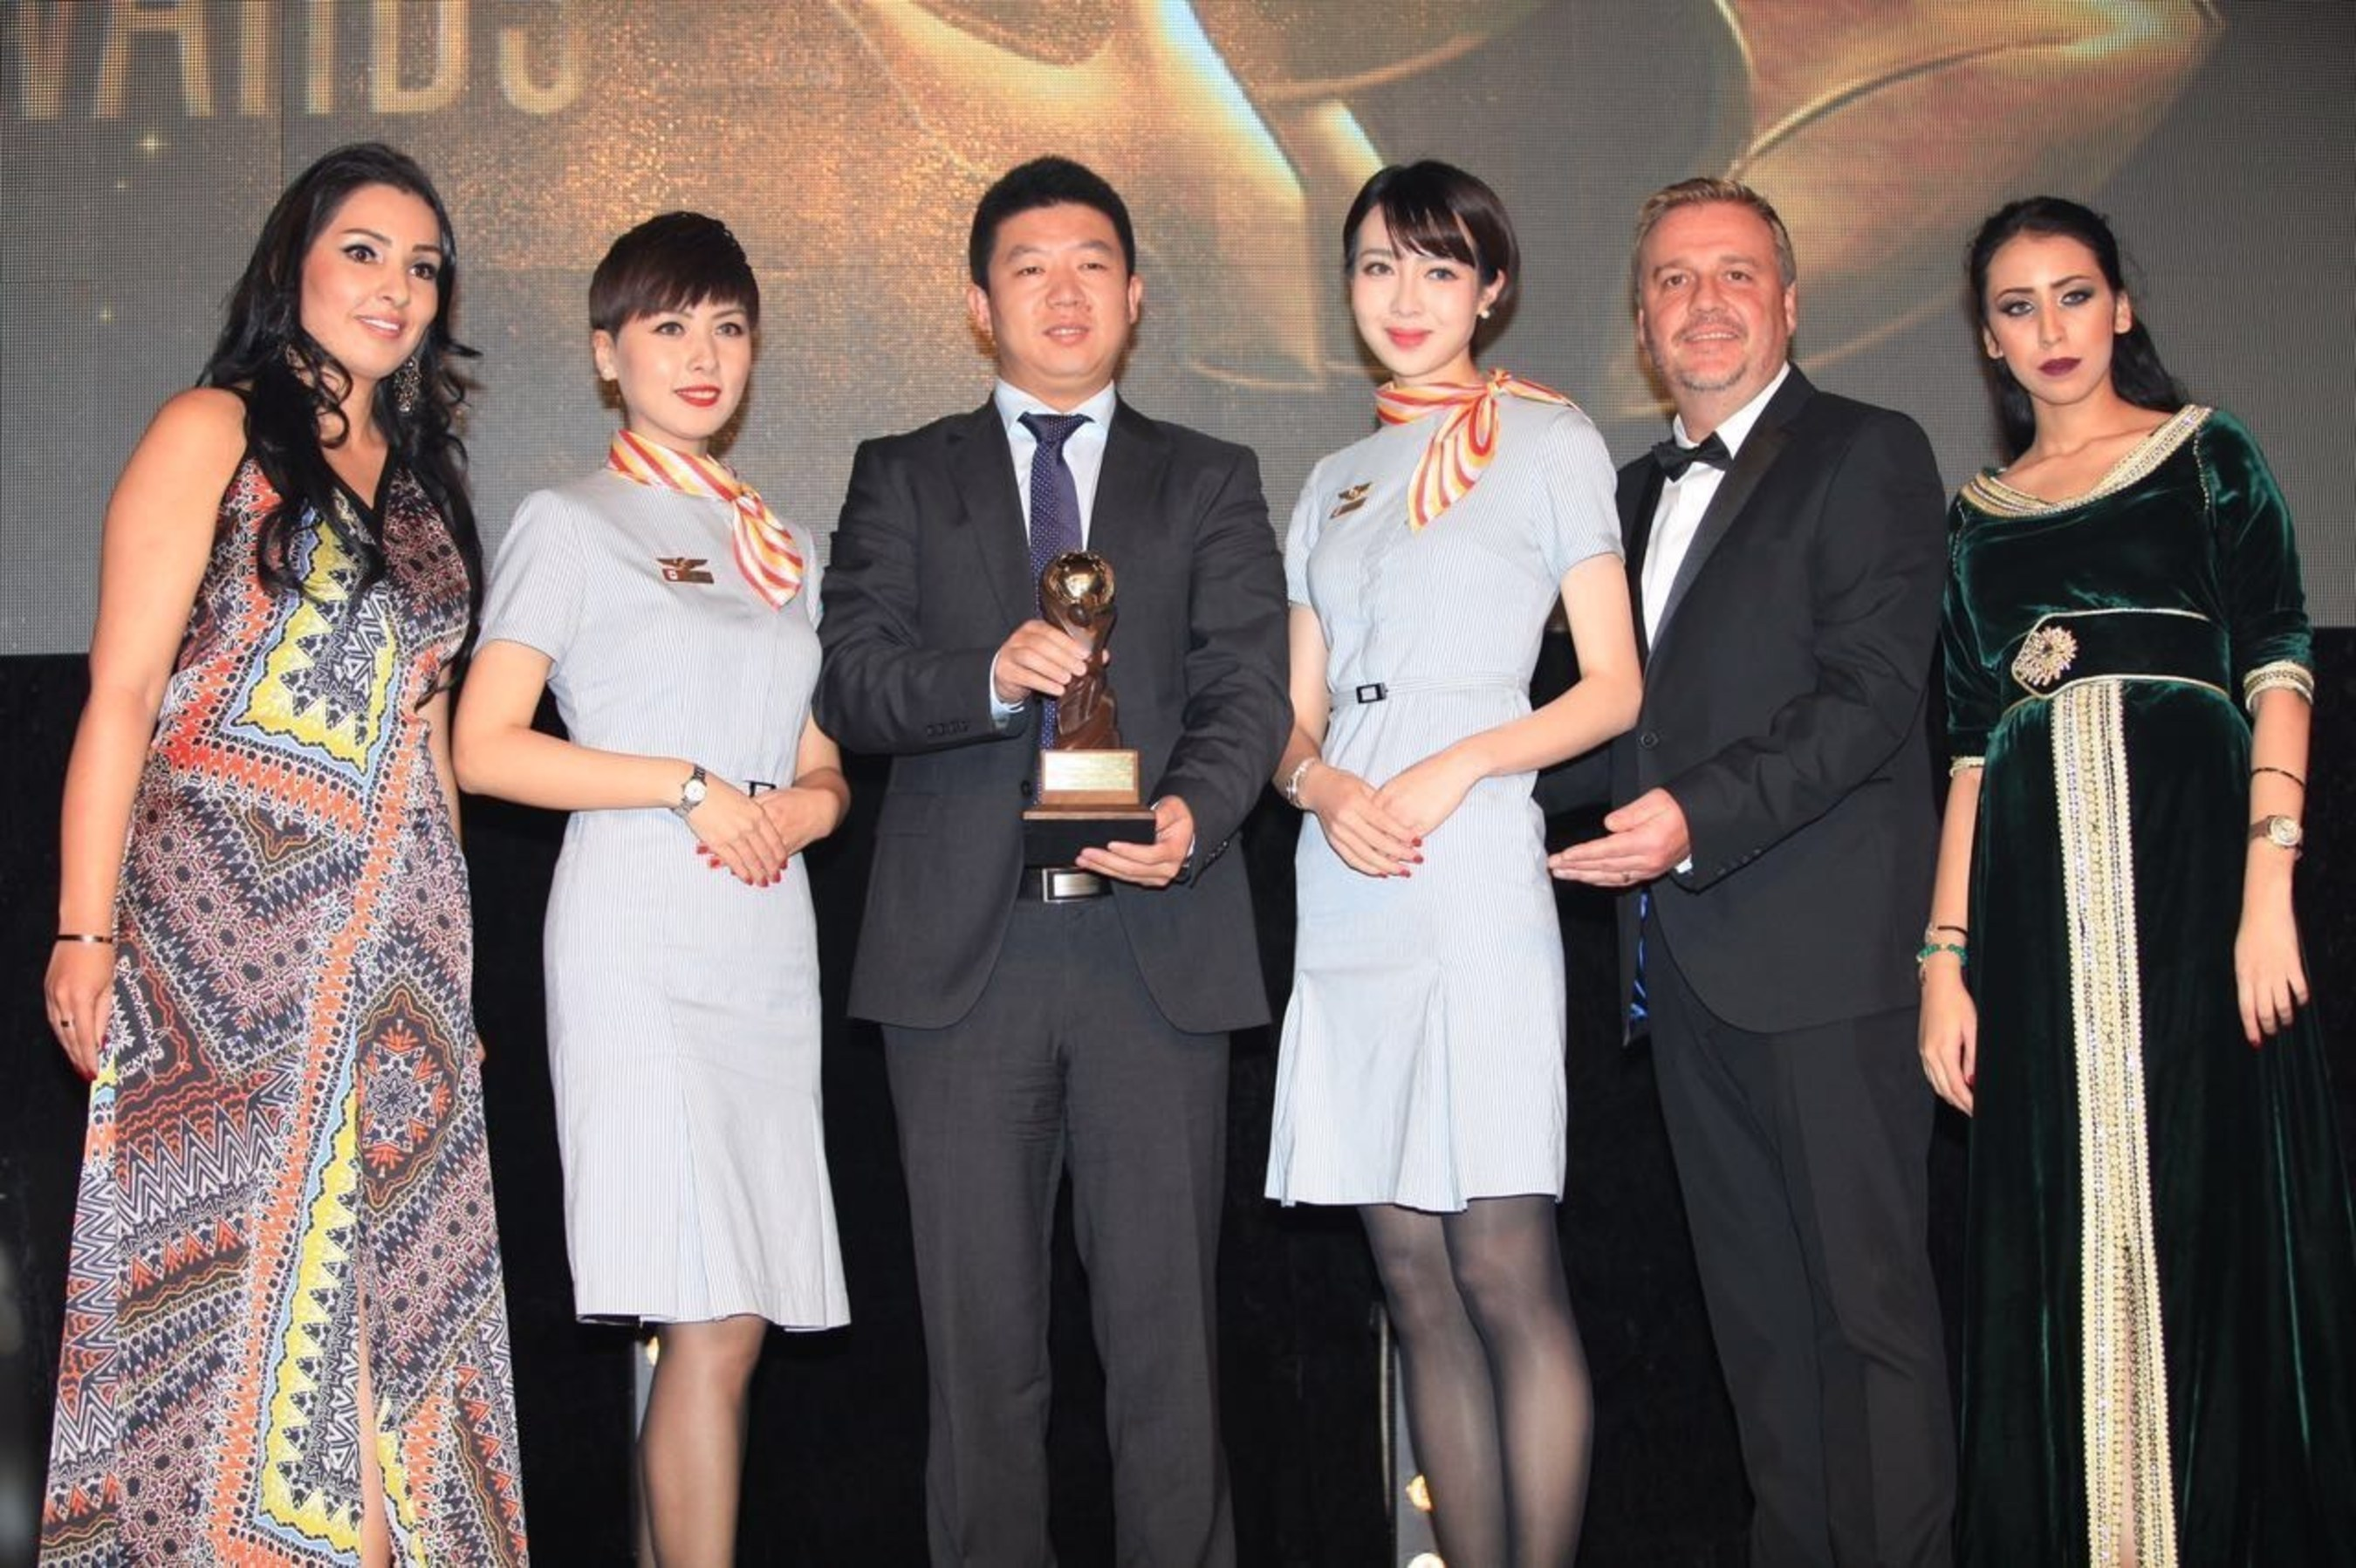 Chris Frost, vice president of World Travel Awards (2nd from right), congratulating Hainan Airlines while ...